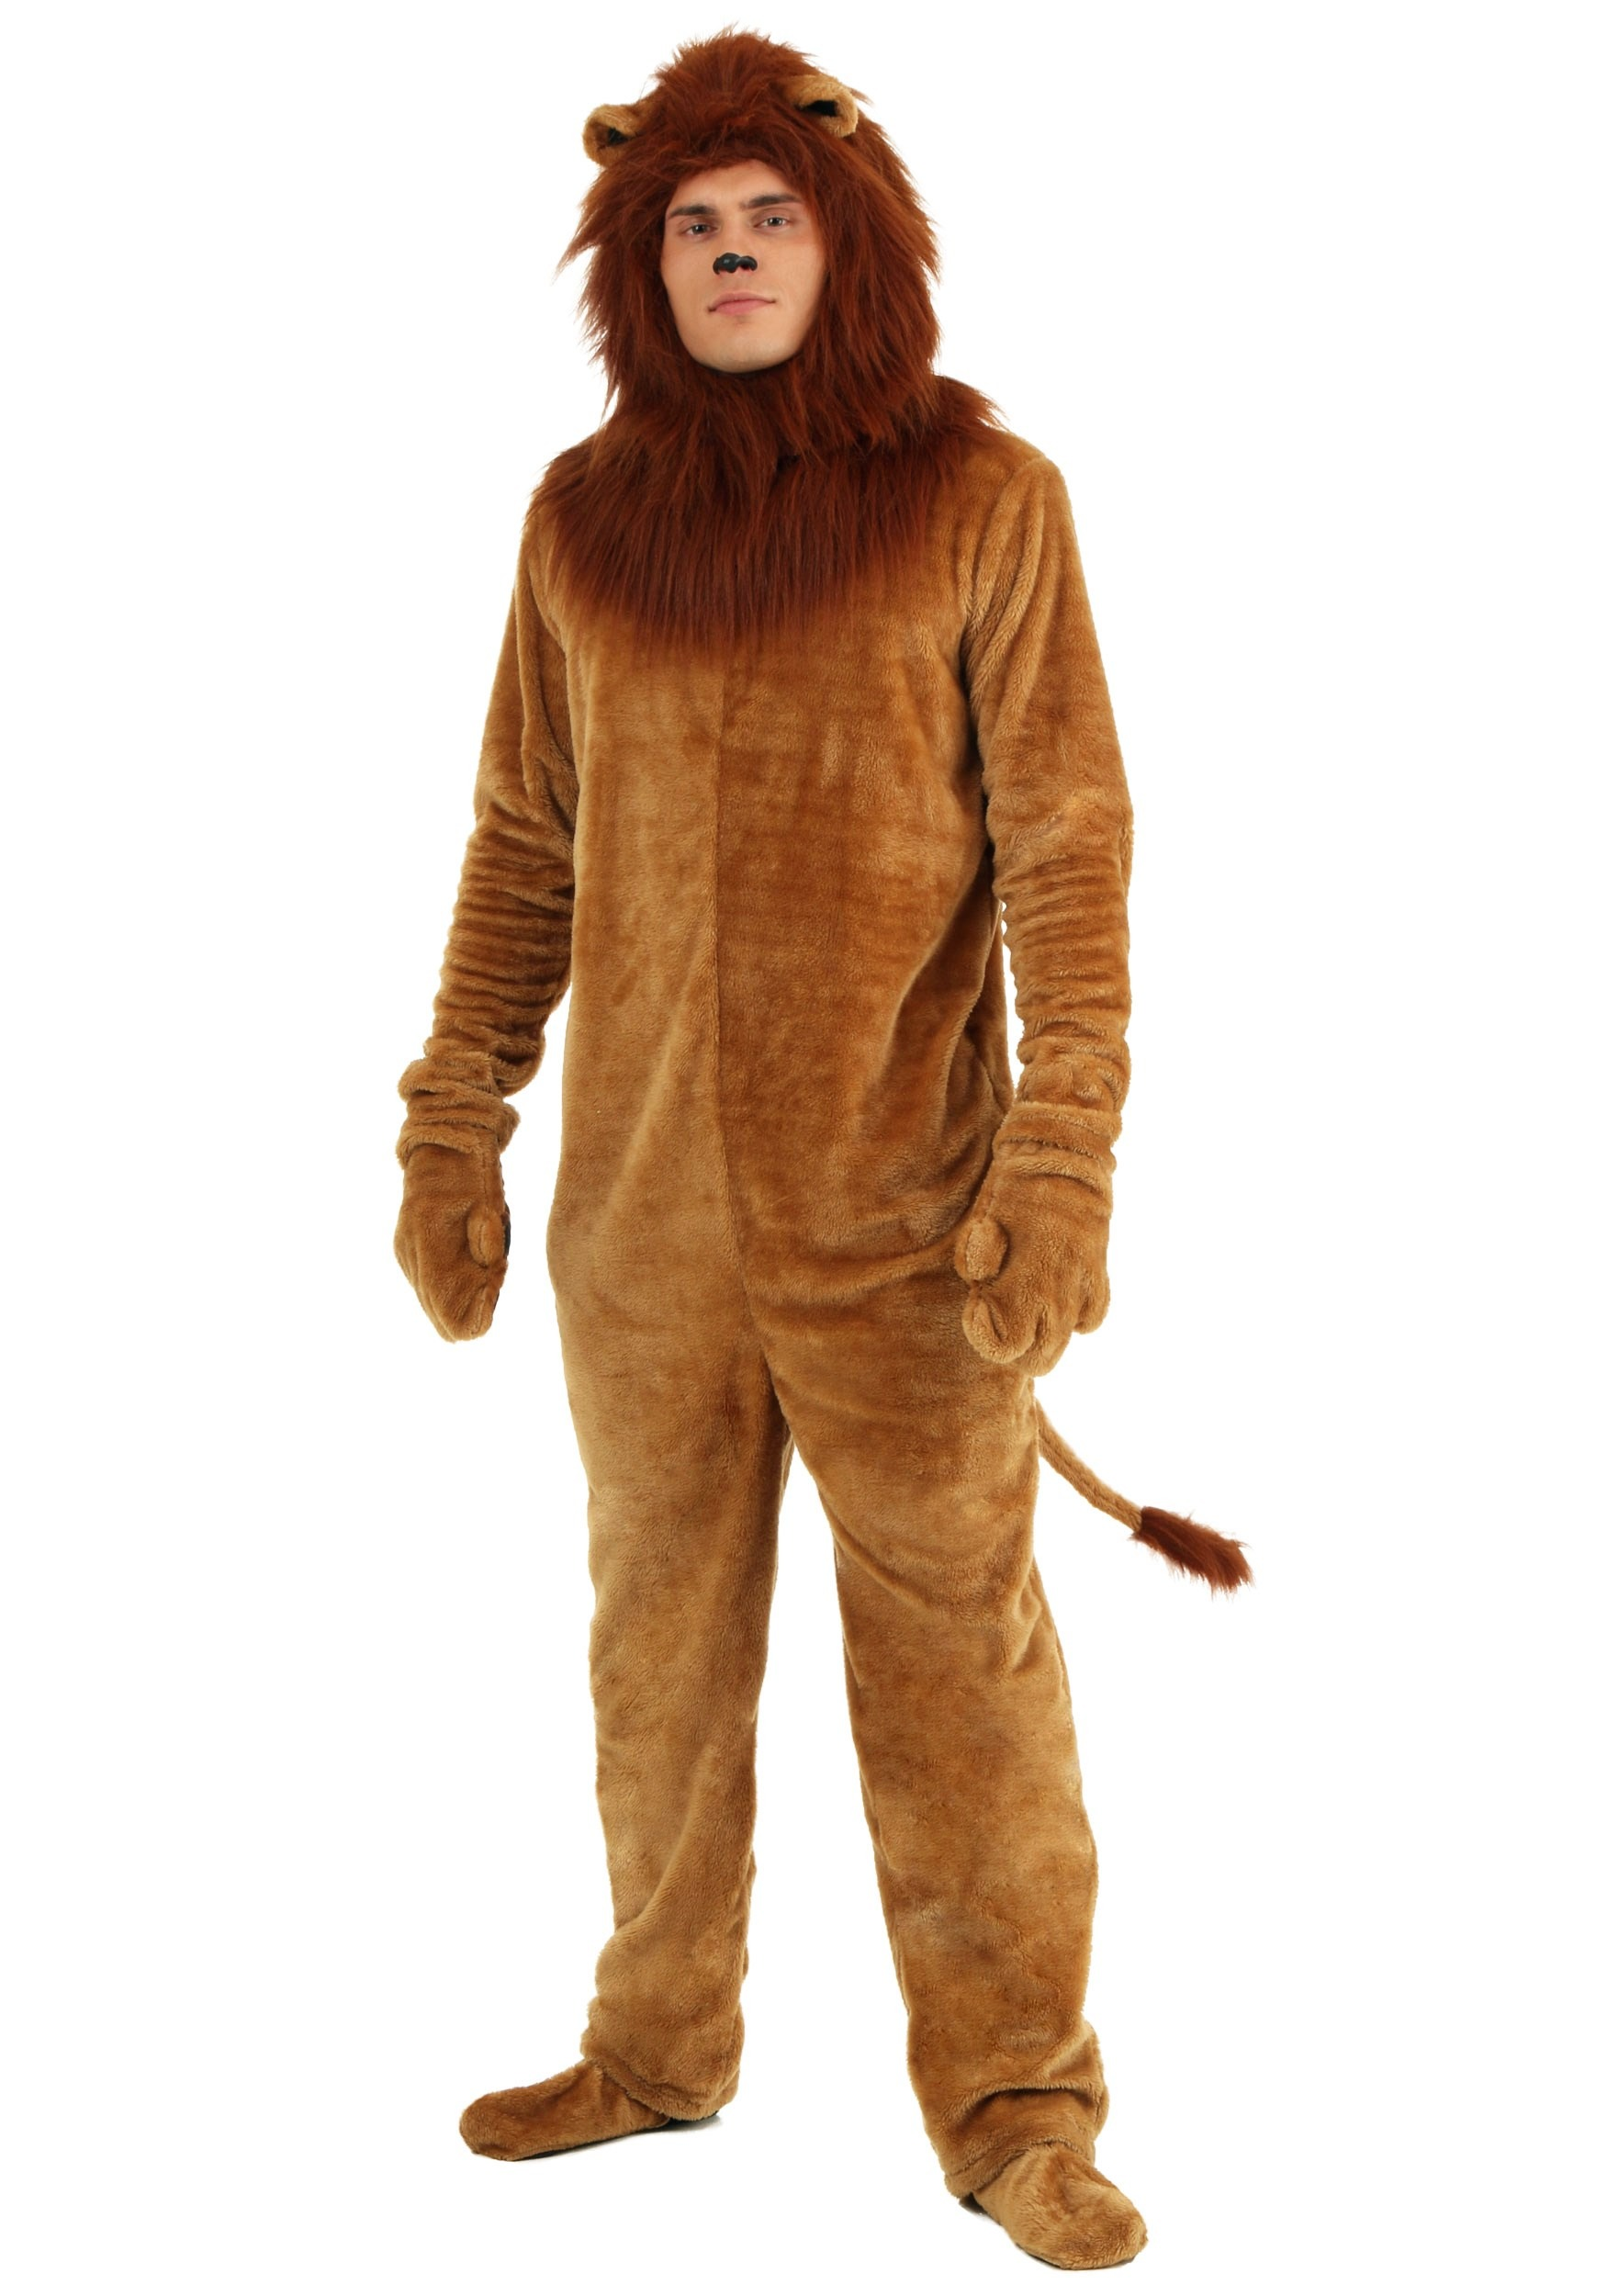 High Quality Adult Deluxe Lion Costume